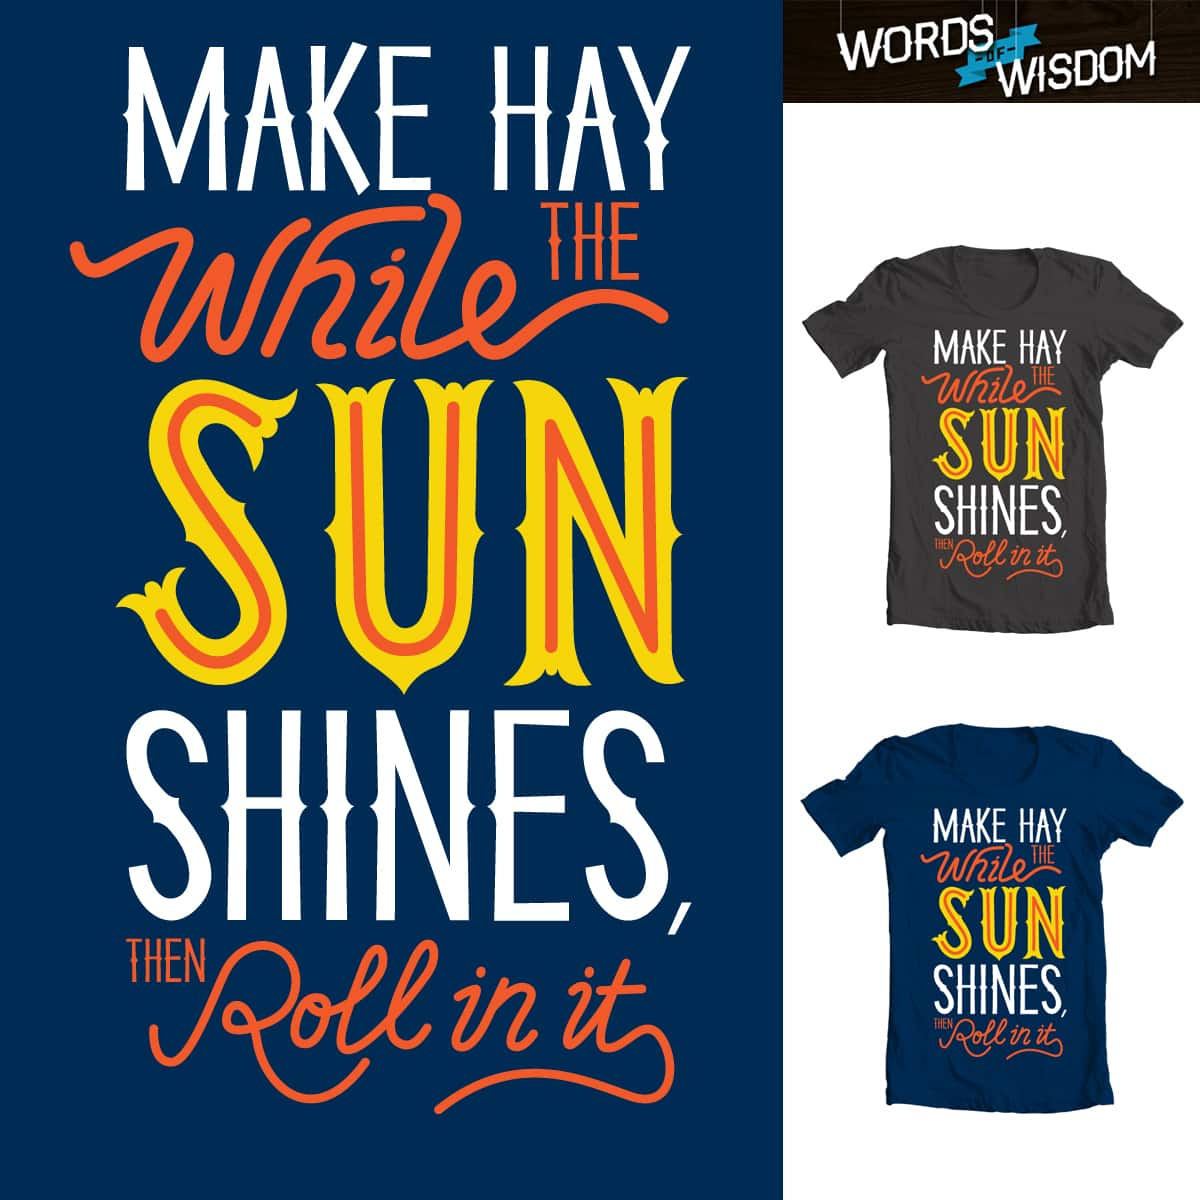 Sunshine by Wharton on Threadless